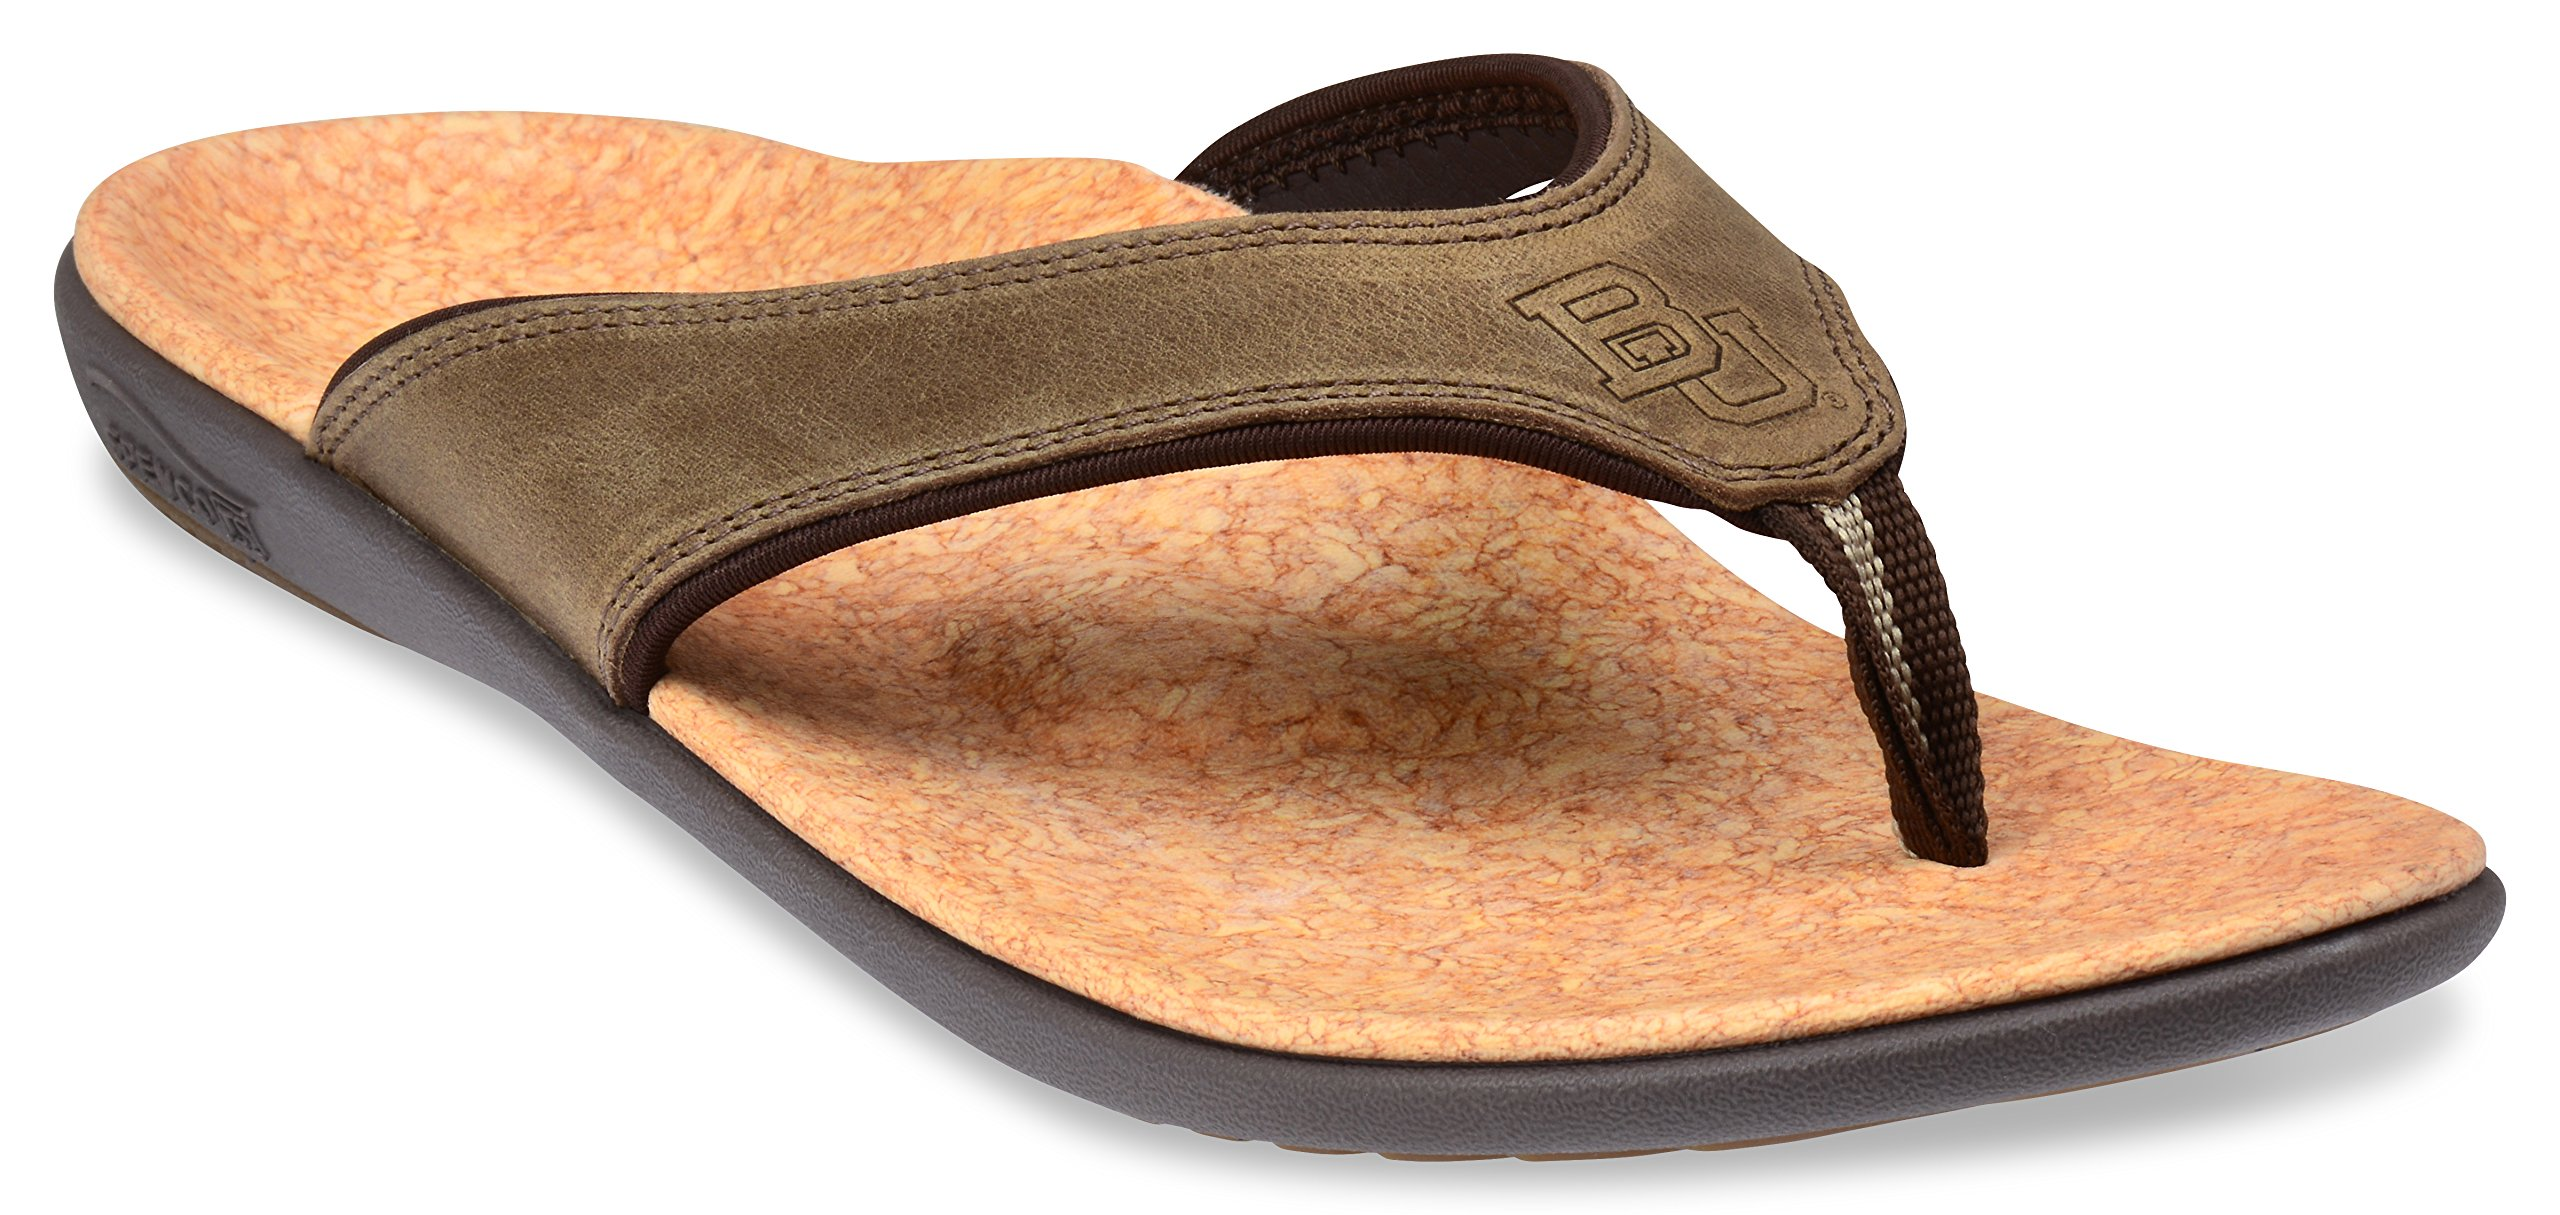 Spenco Men's Yumi Leather Sandal (10, Saddle Brown Leather)